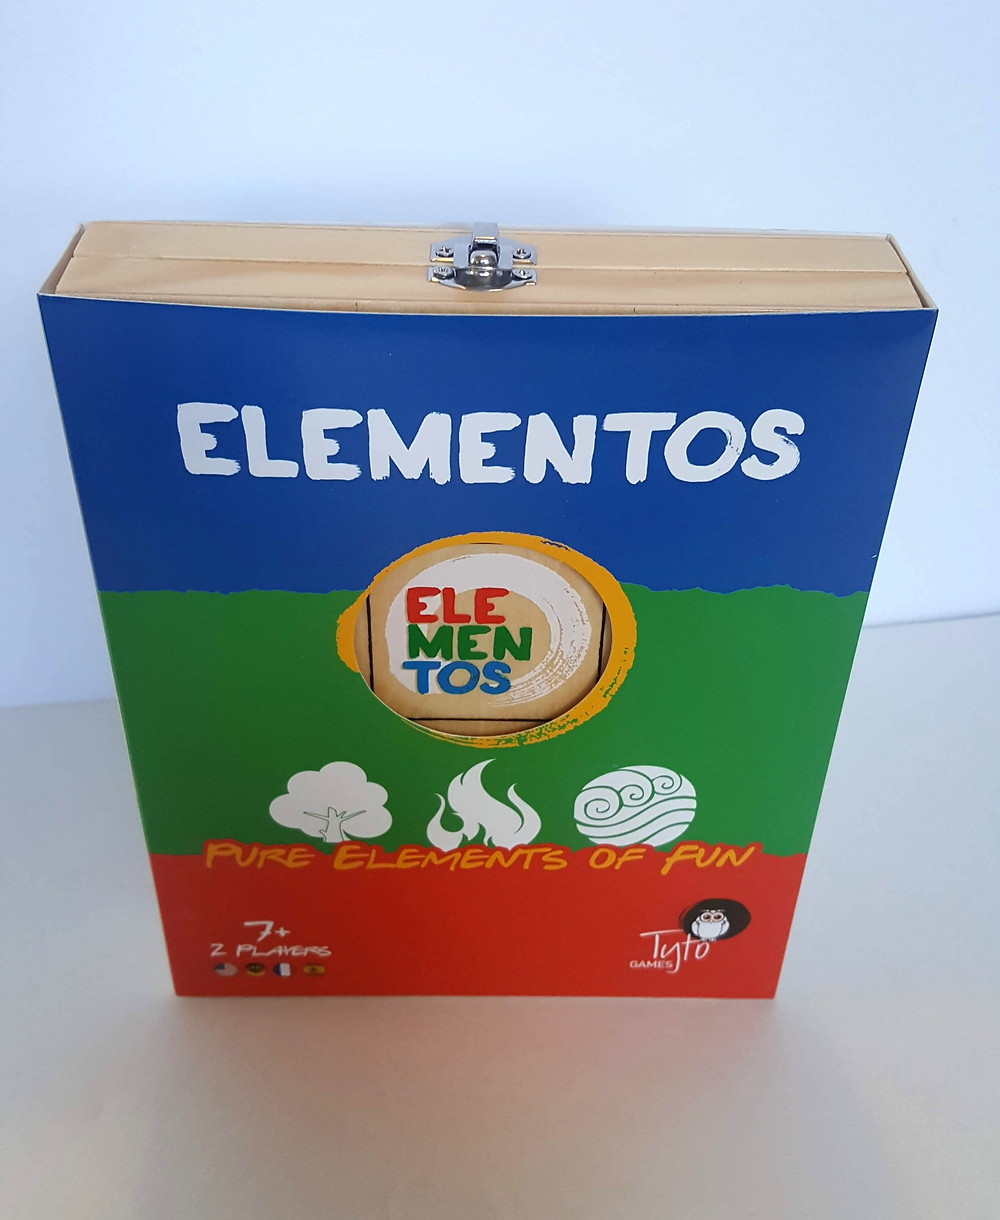 Elementos Board Game Review | The board (which is the box, I love that) folds open to be a 3 by 8 grid | Geeky Goodies Board Game Reviews